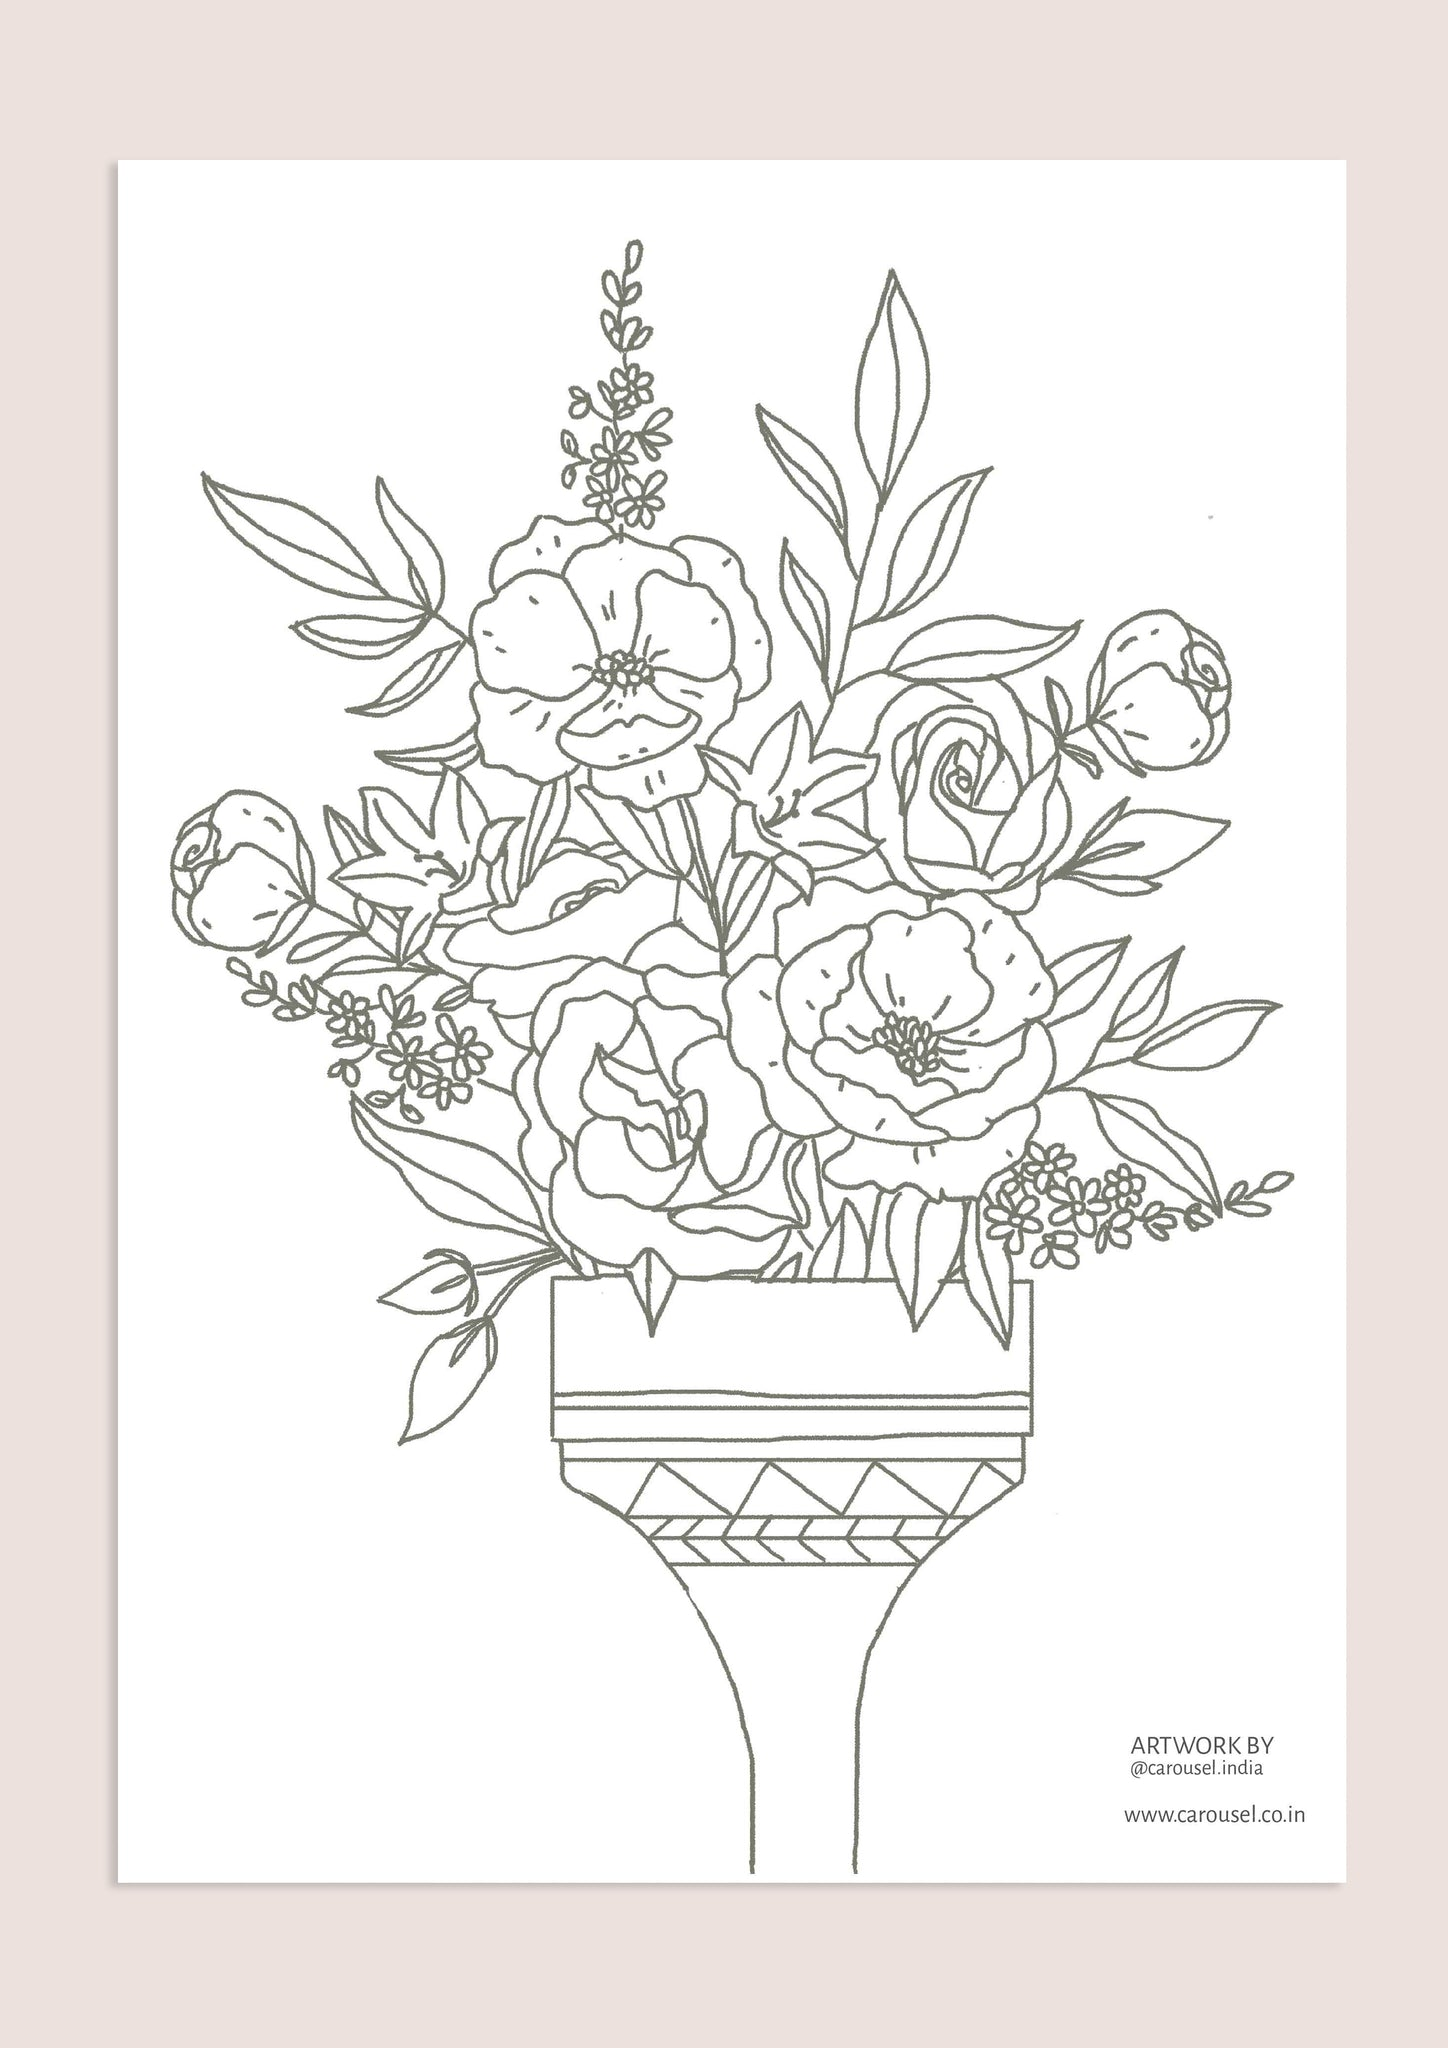 Colour-In Page - Paint Brush